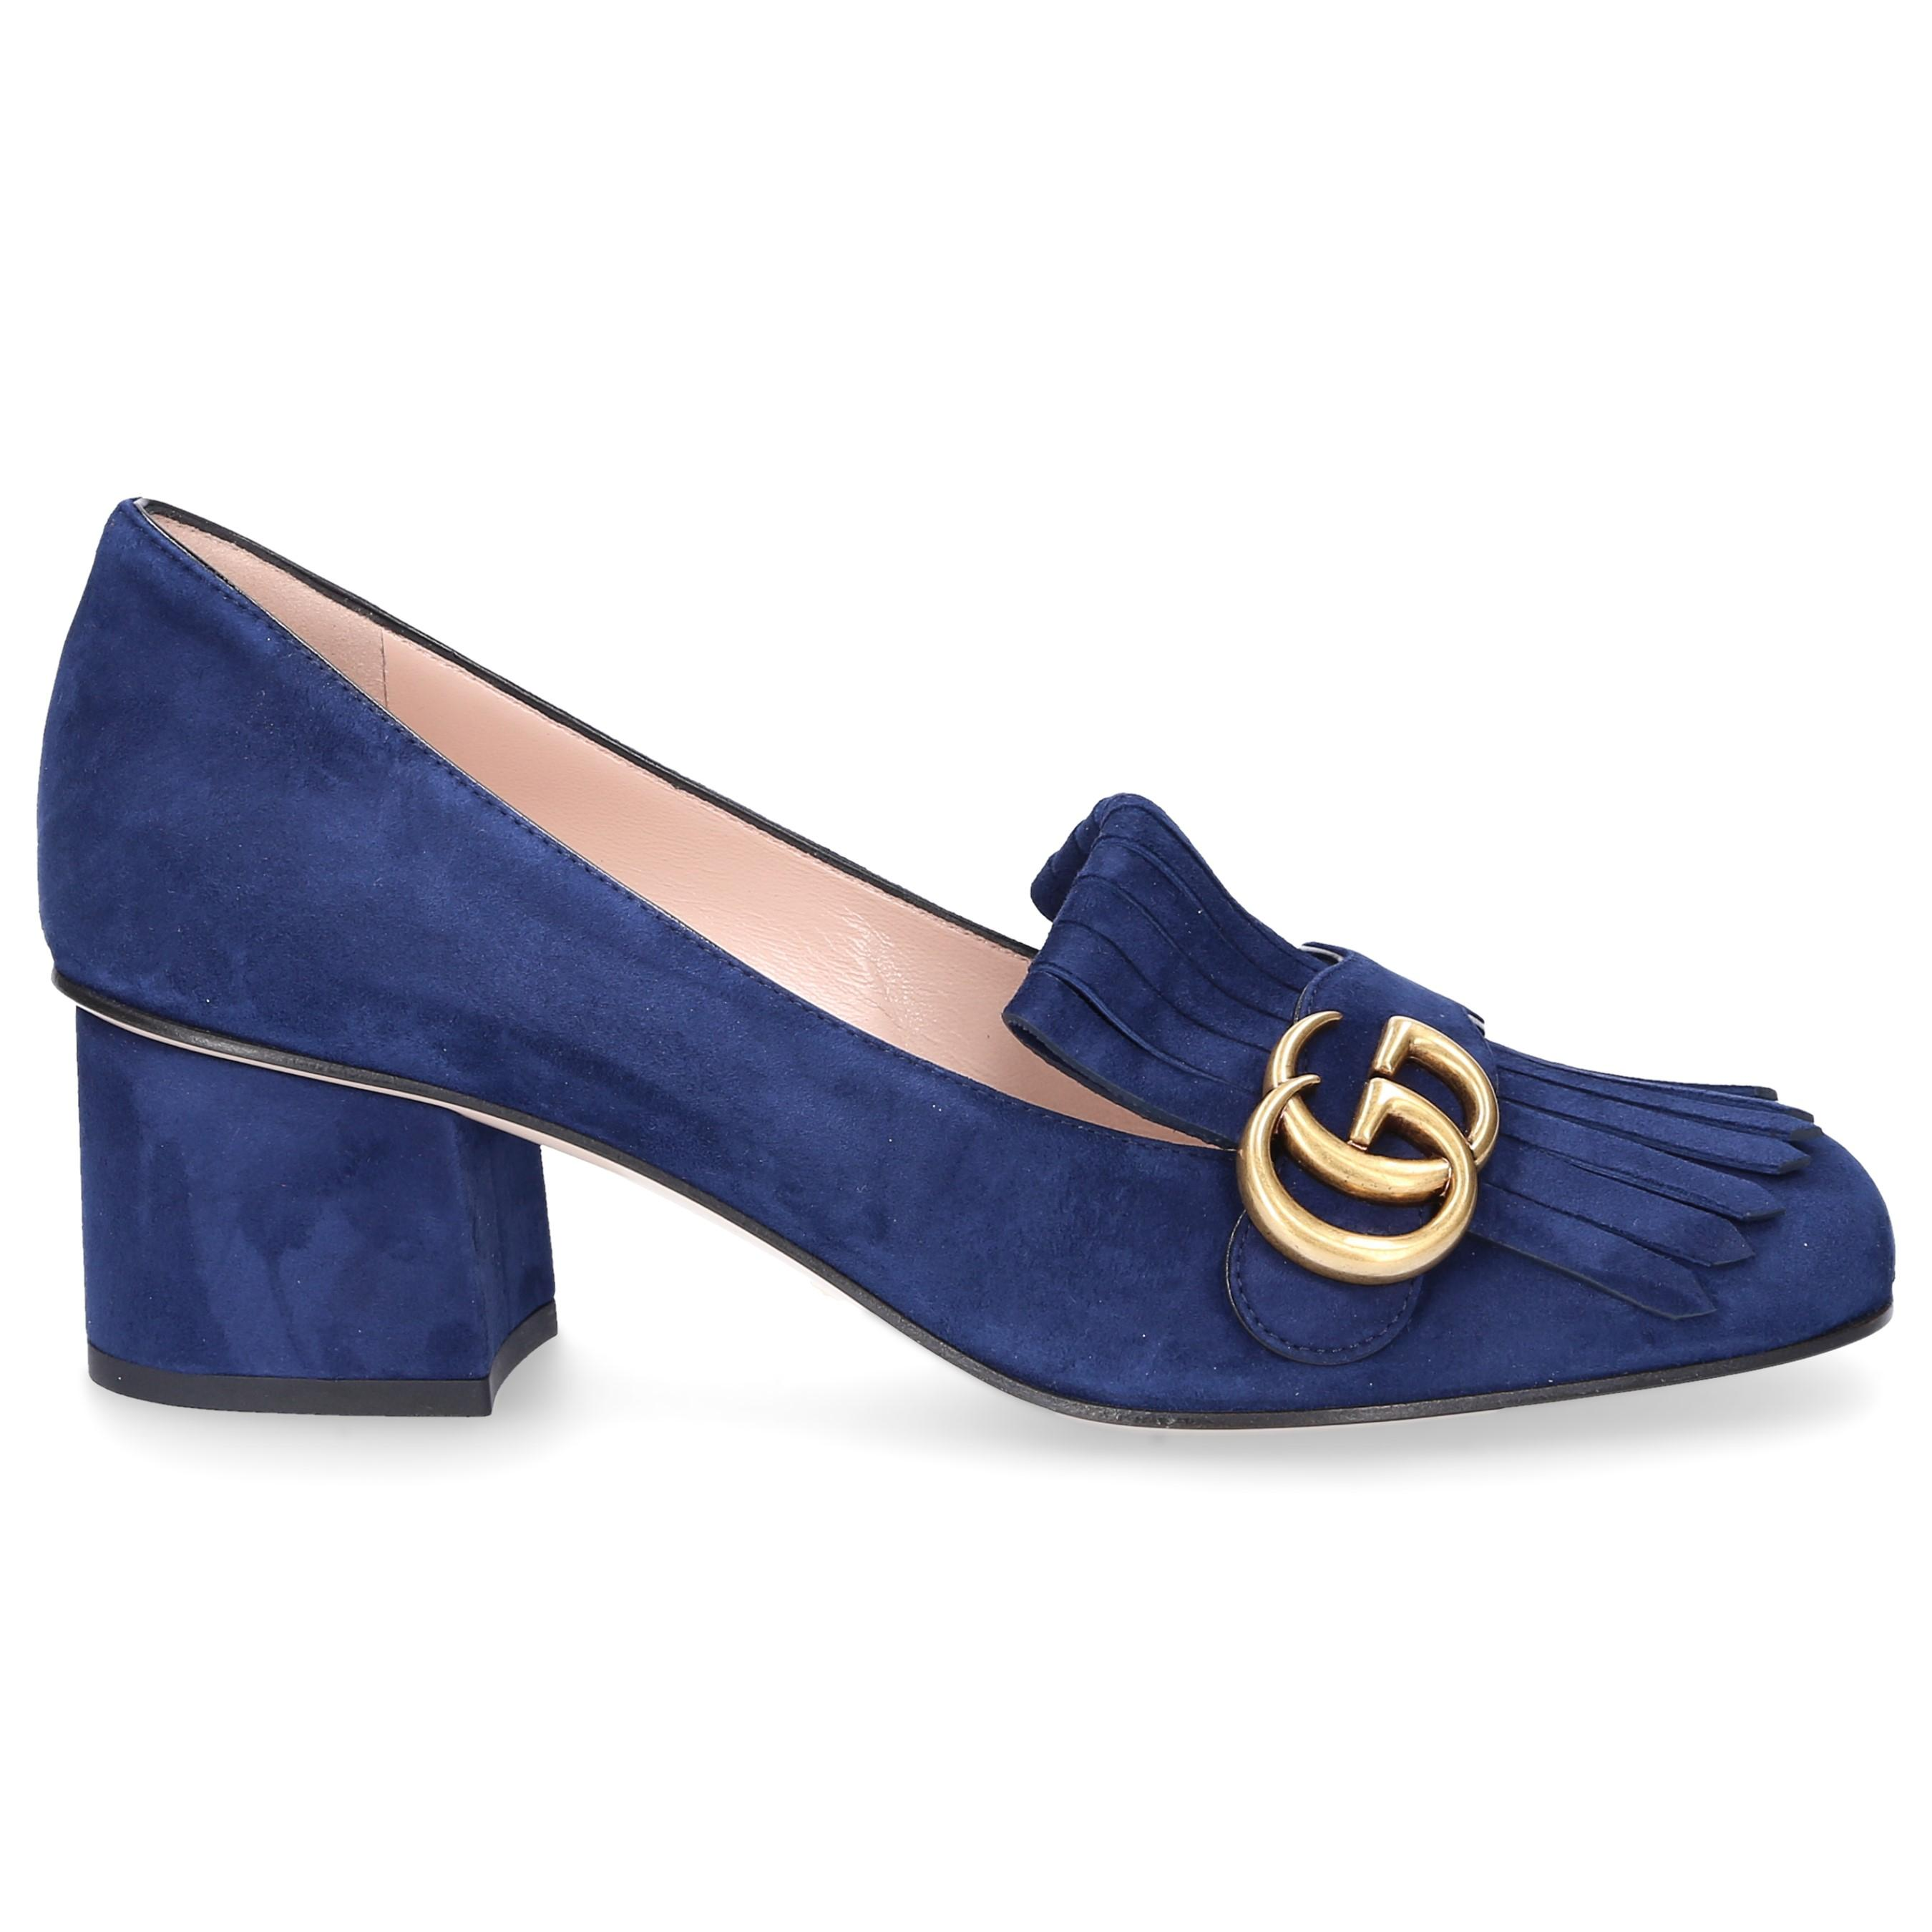 47fcb8c2b25 Gucci Pumps Marmont Suede Fringe Blue in Blue - Lyst